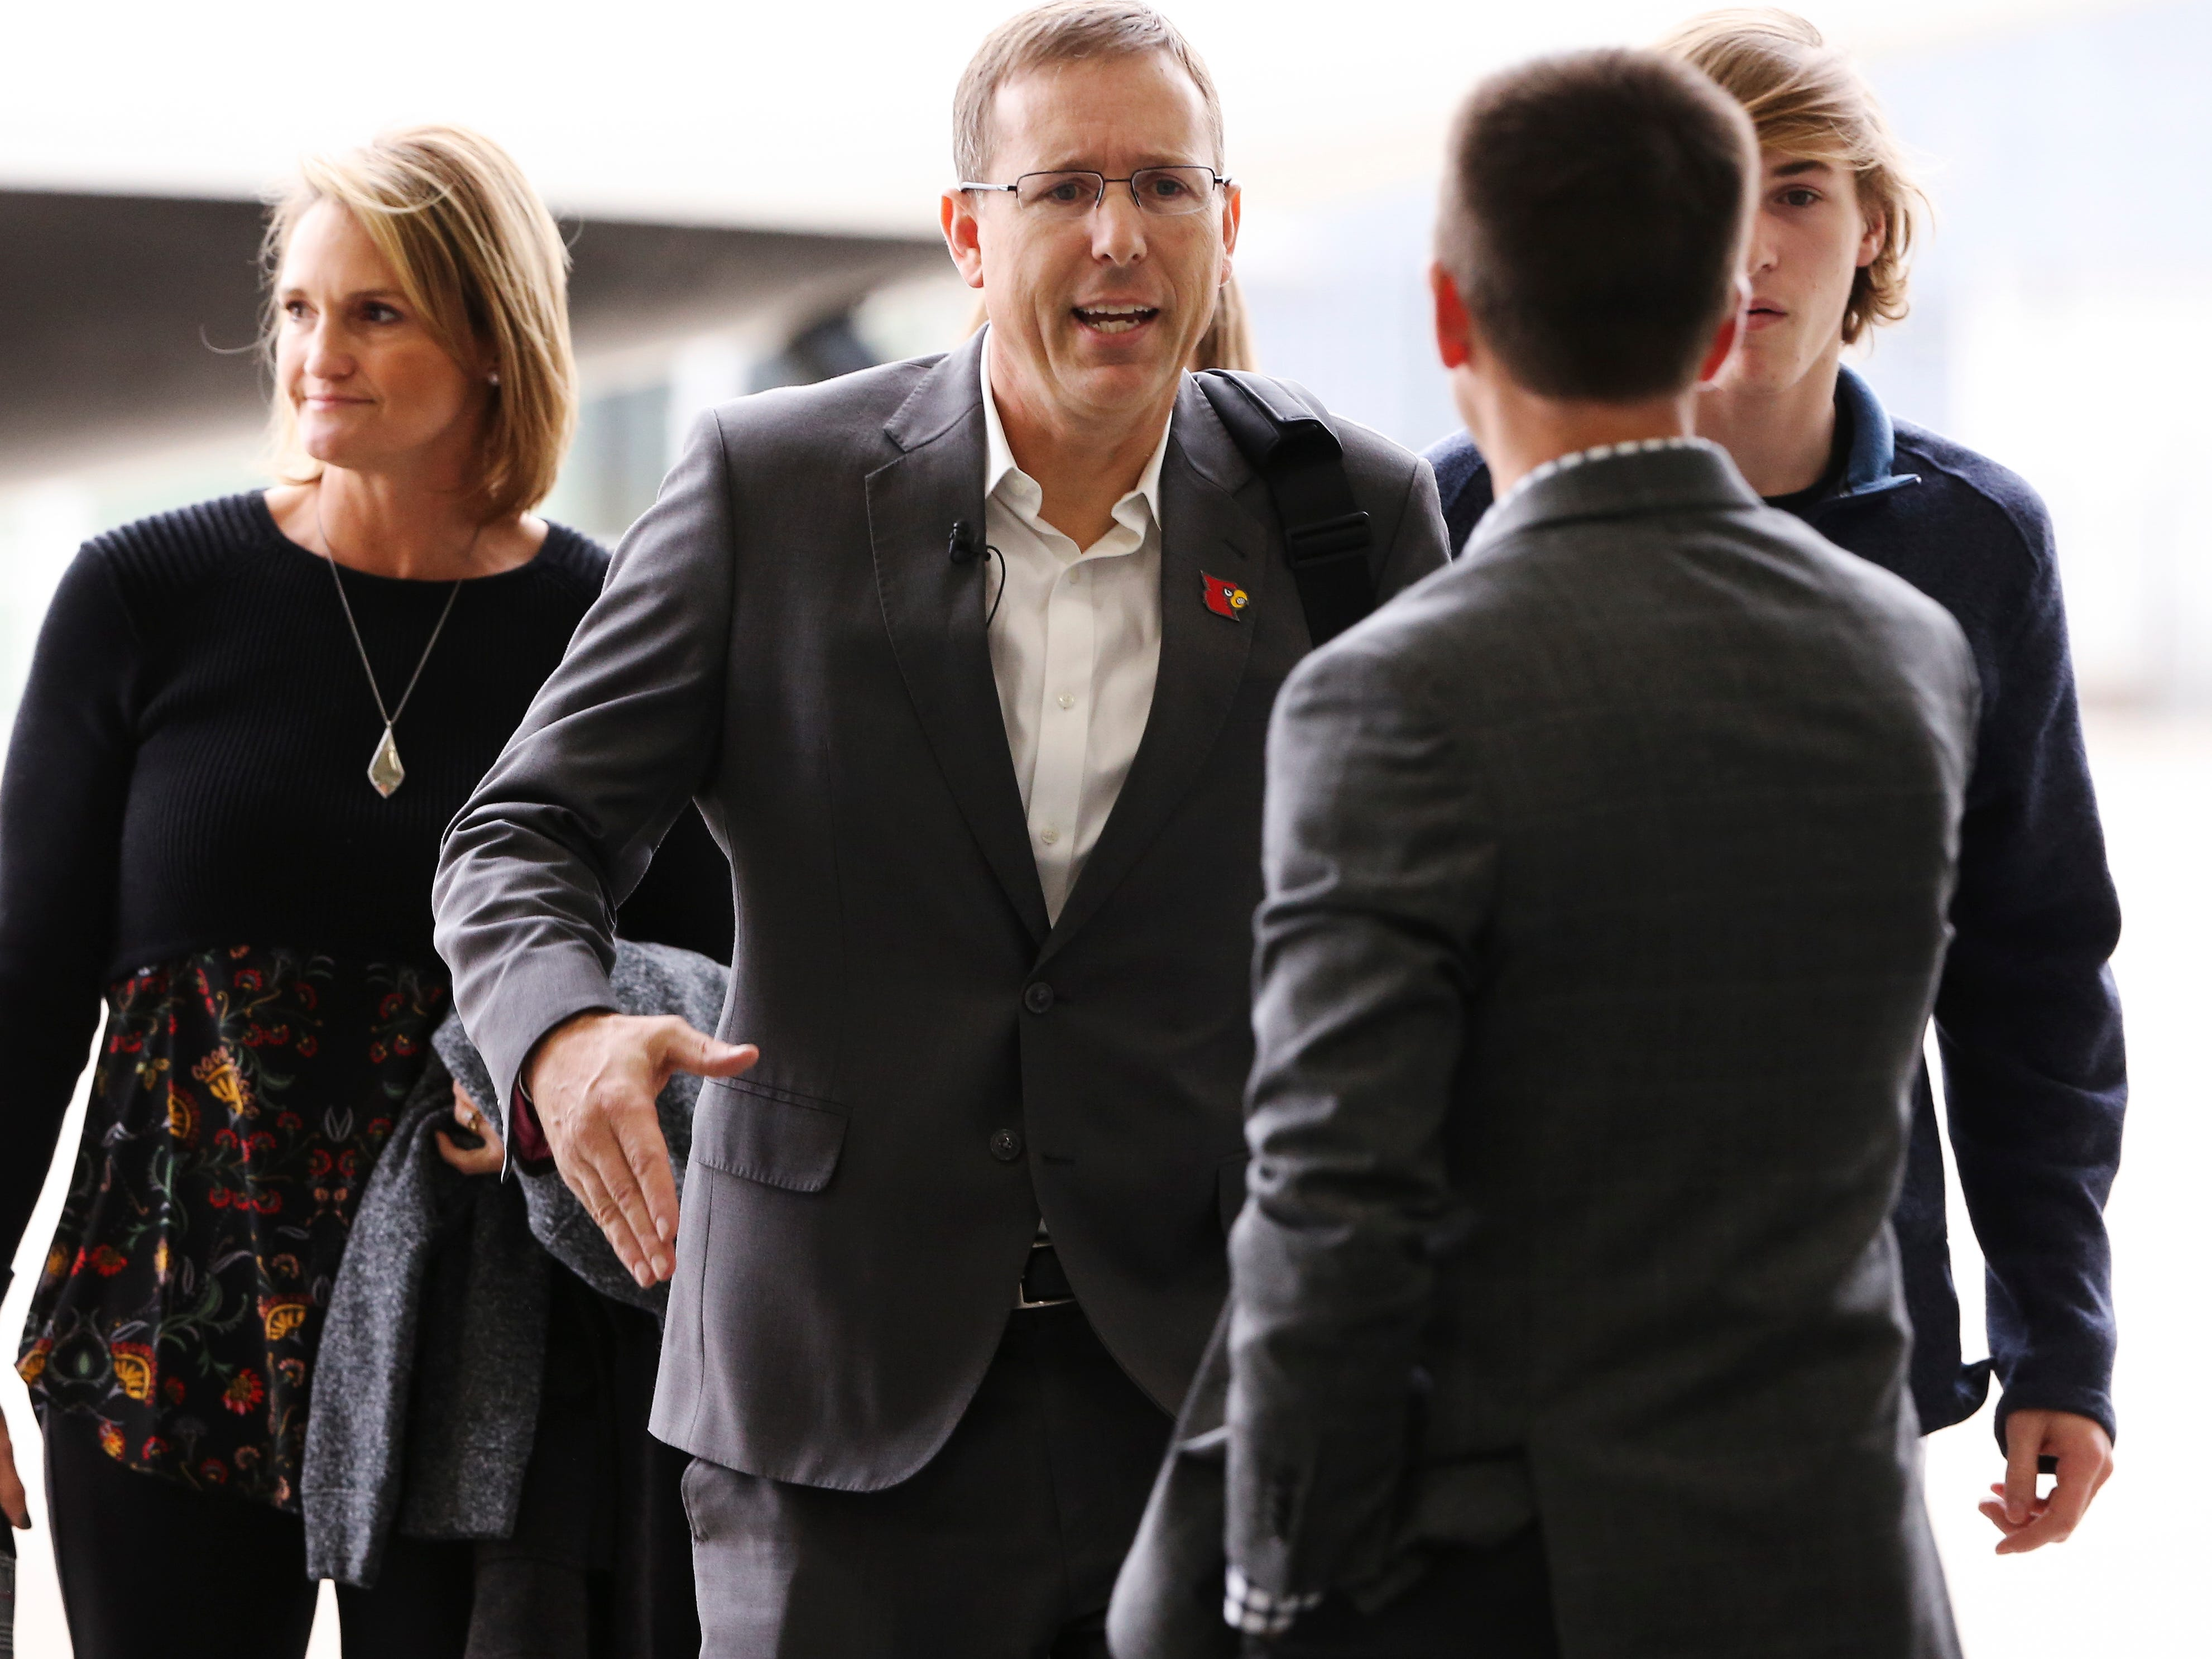 Appalachian State head football coach Scott Satterfield, center, greets people after exiting a private plane with his family in Louisville where he expects to be named the new head football coach at U of L.  Dec. 4, 2018